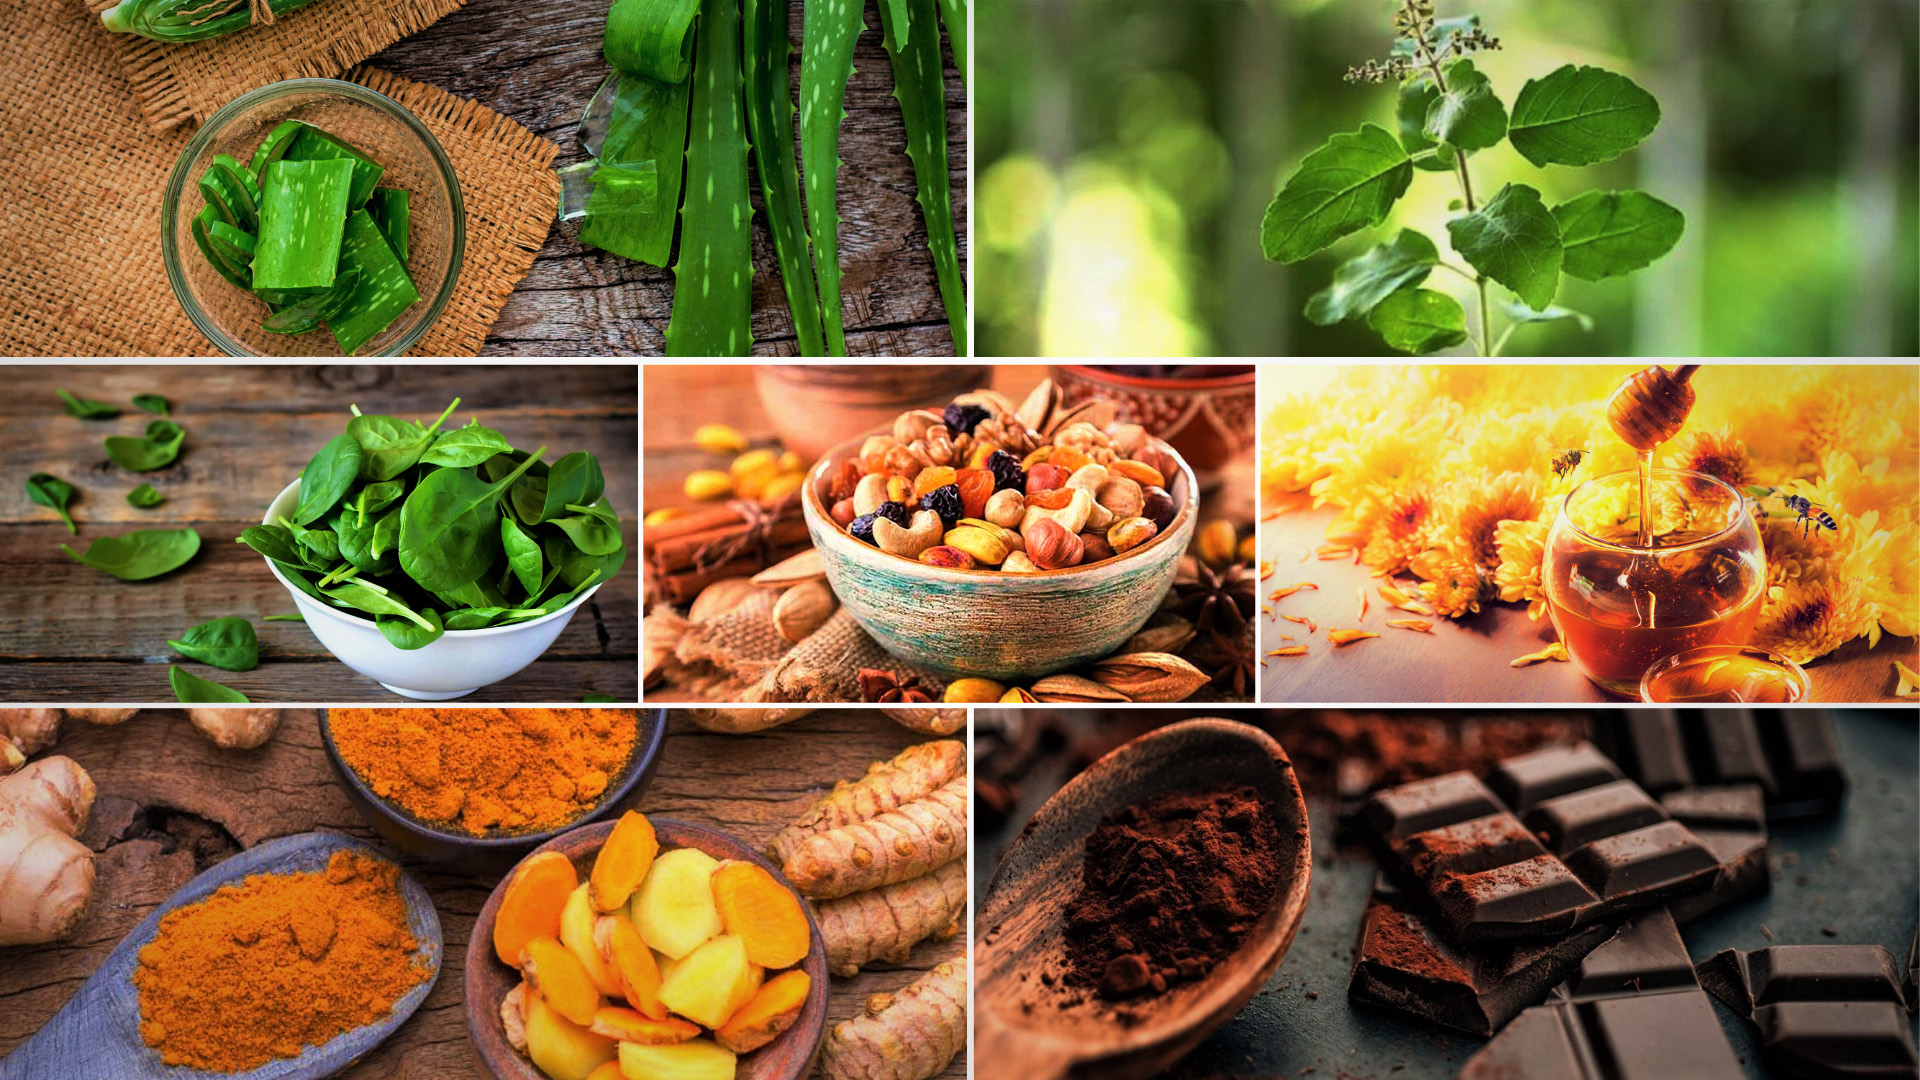 21-herbs-and-spices-to-boost-your-immunity